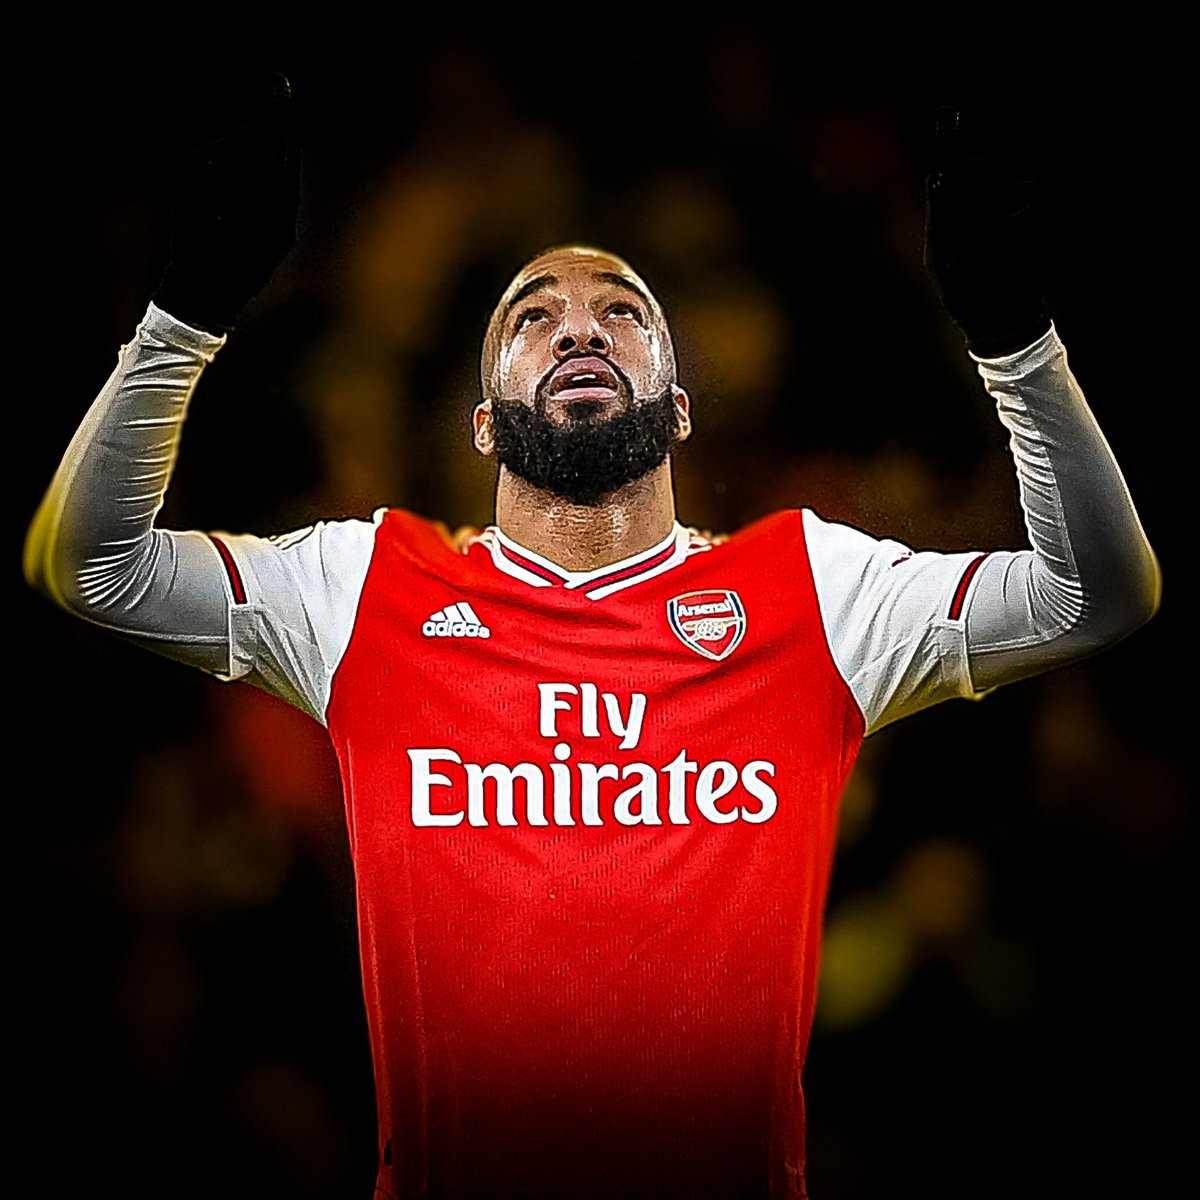 Laca mate I see your active so here's my edit I did for you x @LacazetteAlex